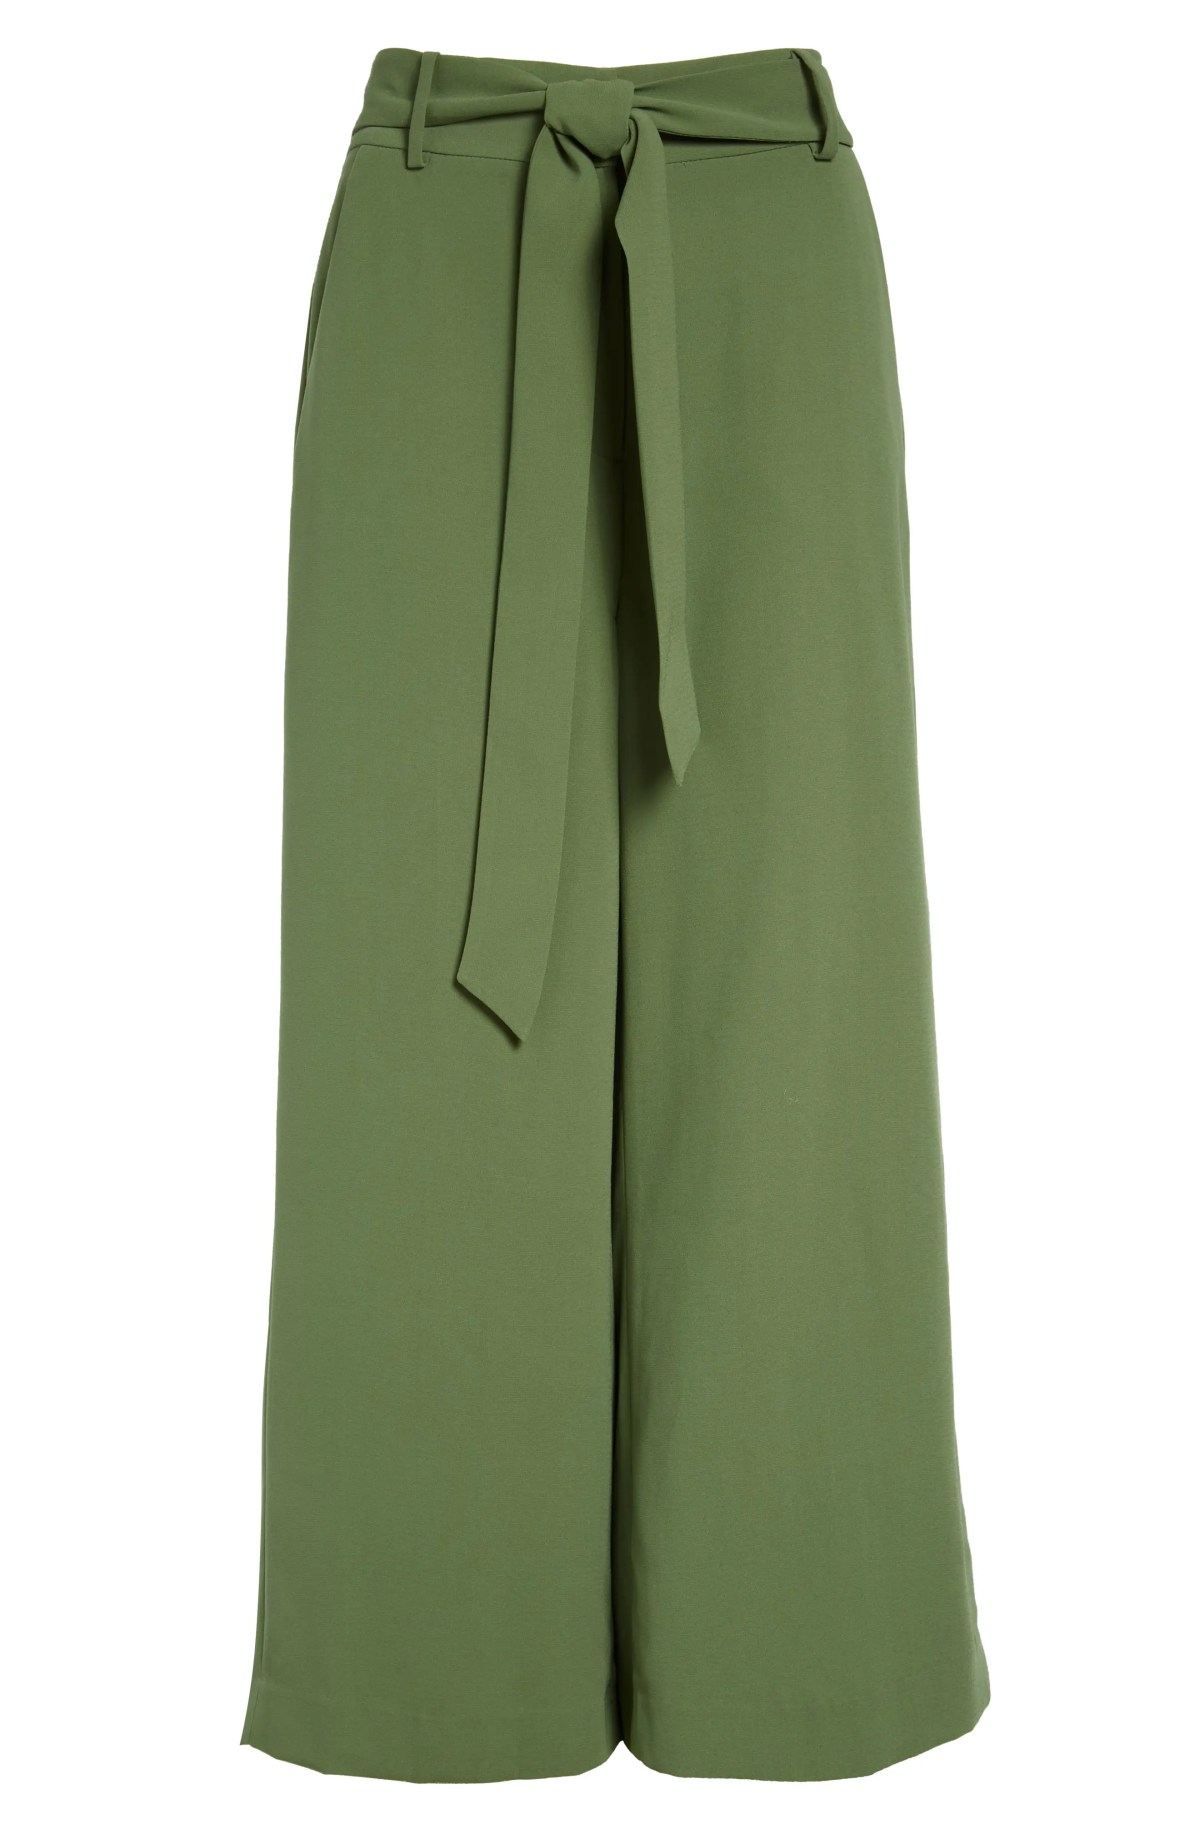 RACHEL PARCELL Tie Front Pants, Main, color, GREEN DILL